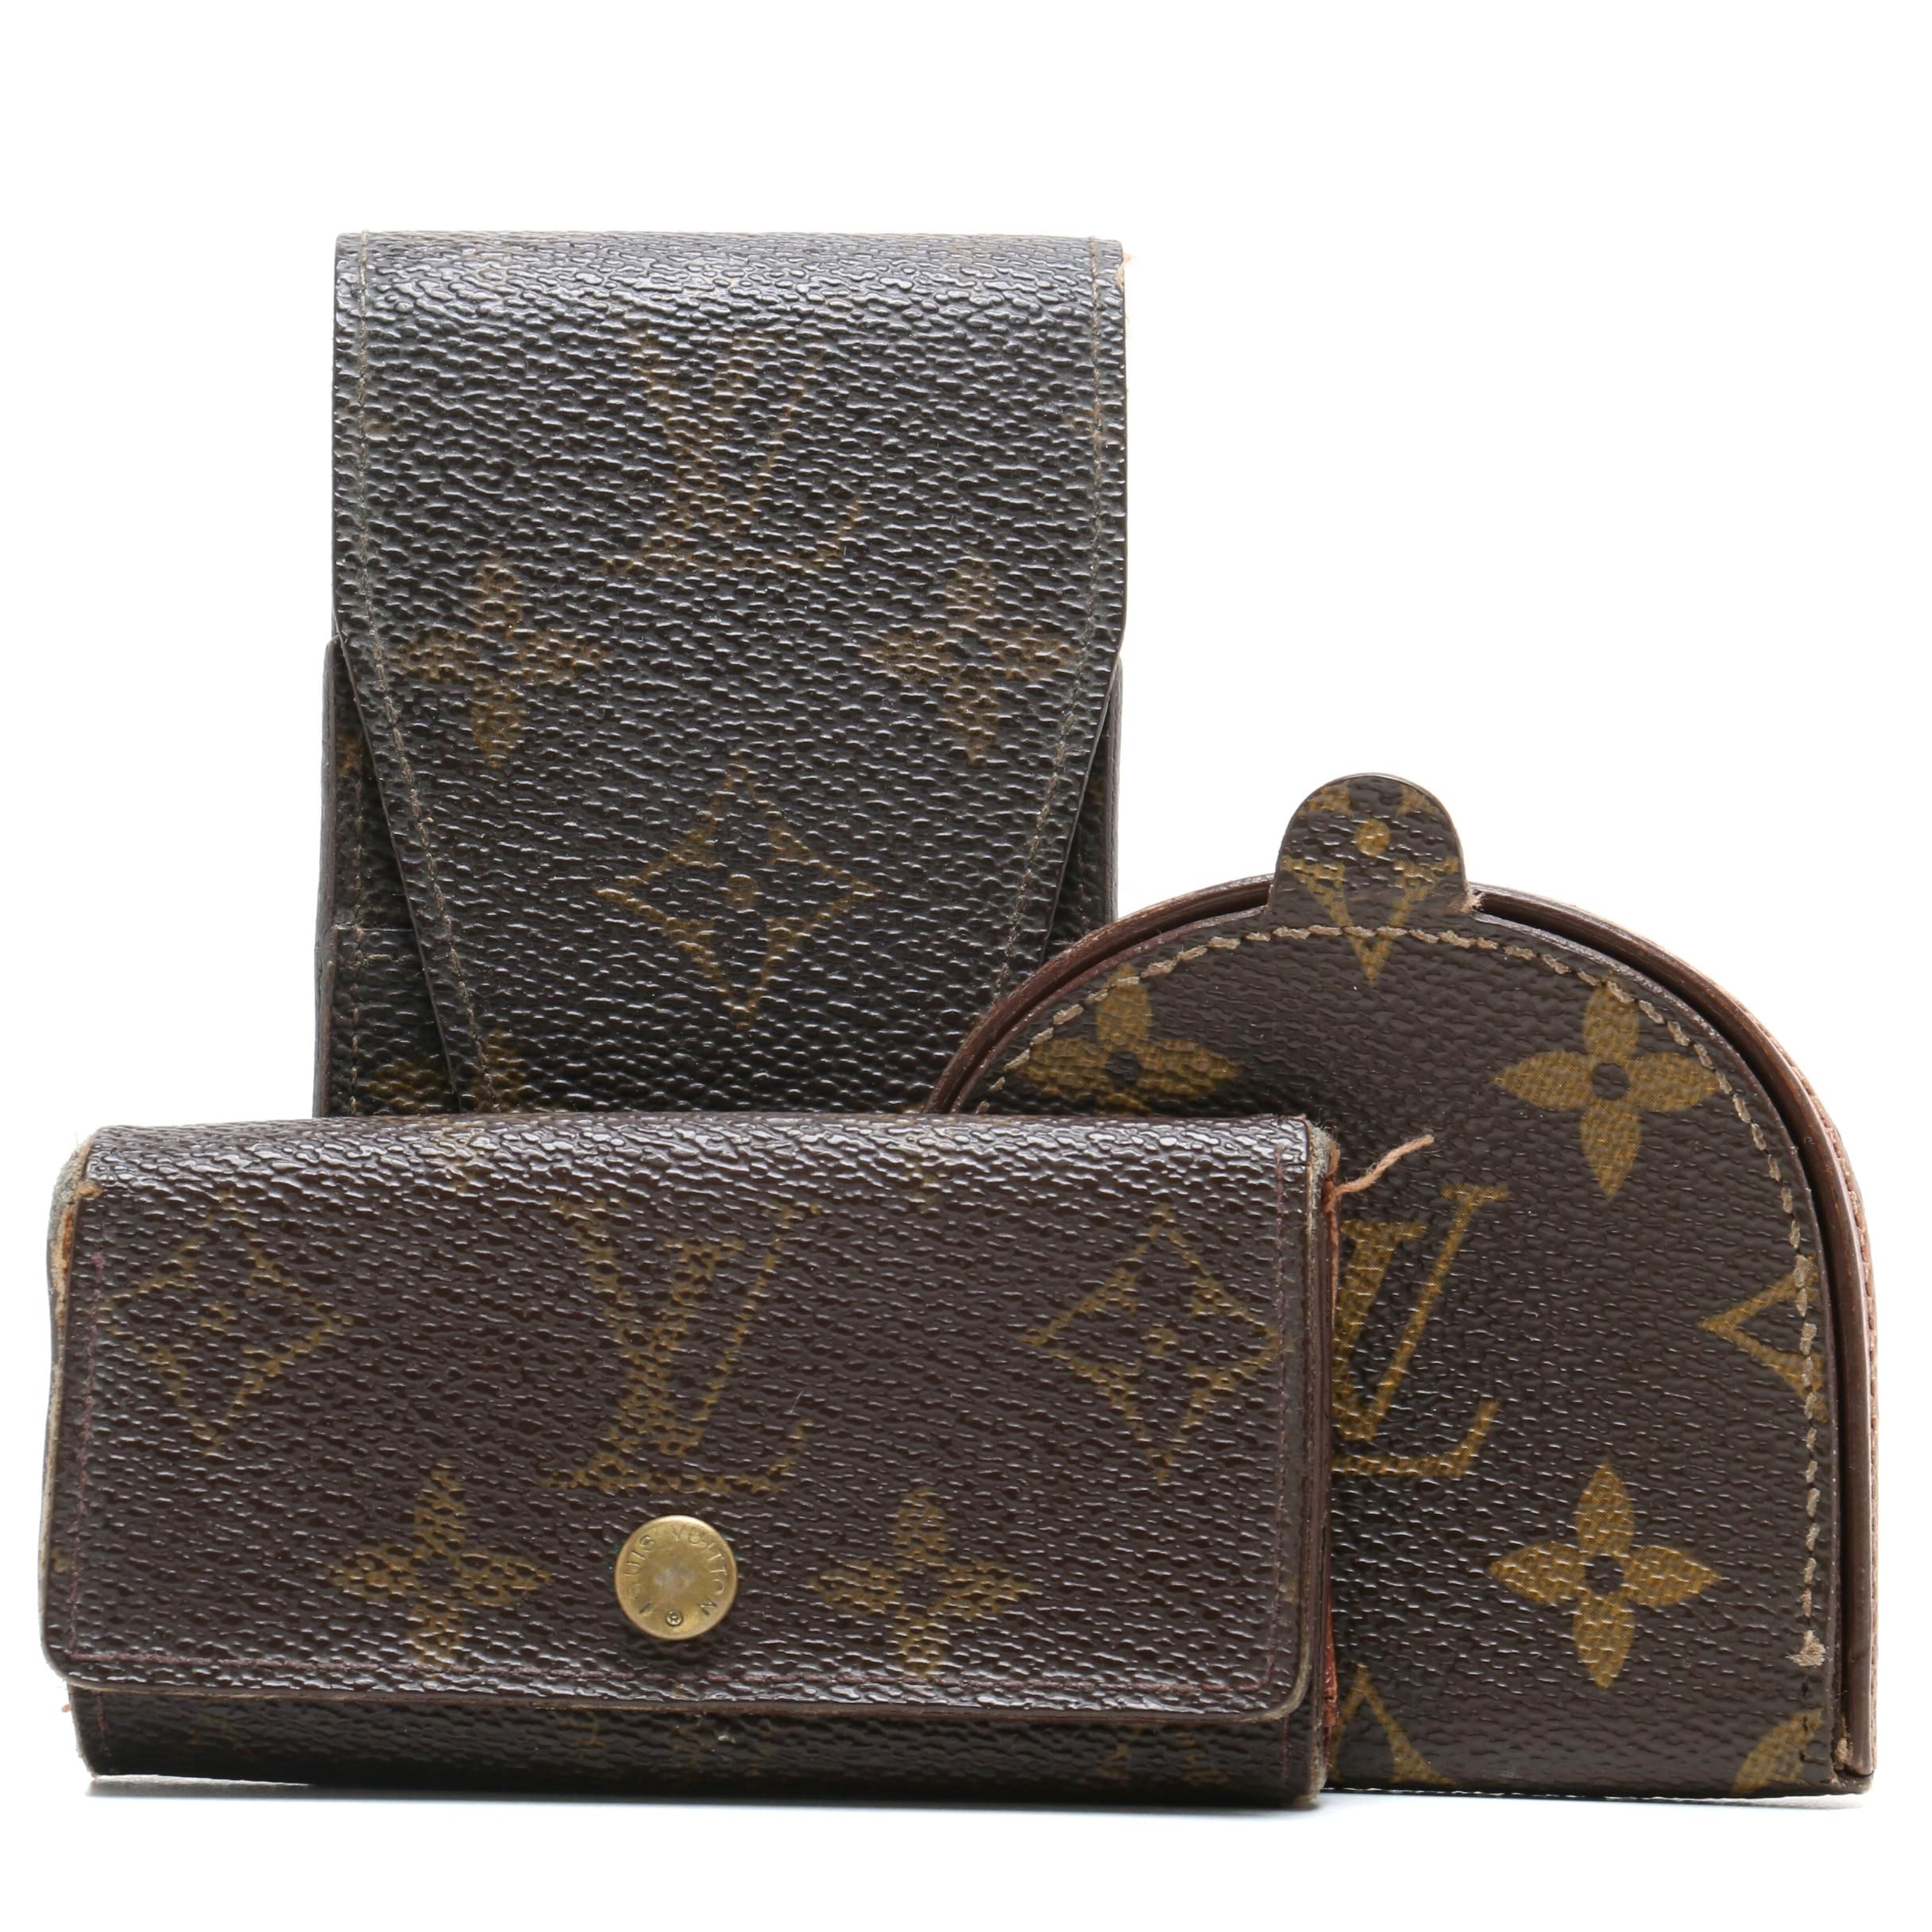 Louis Vuitton Paris Monogram Canvas Coin Purse, Cell Phone Holder, and Key Case